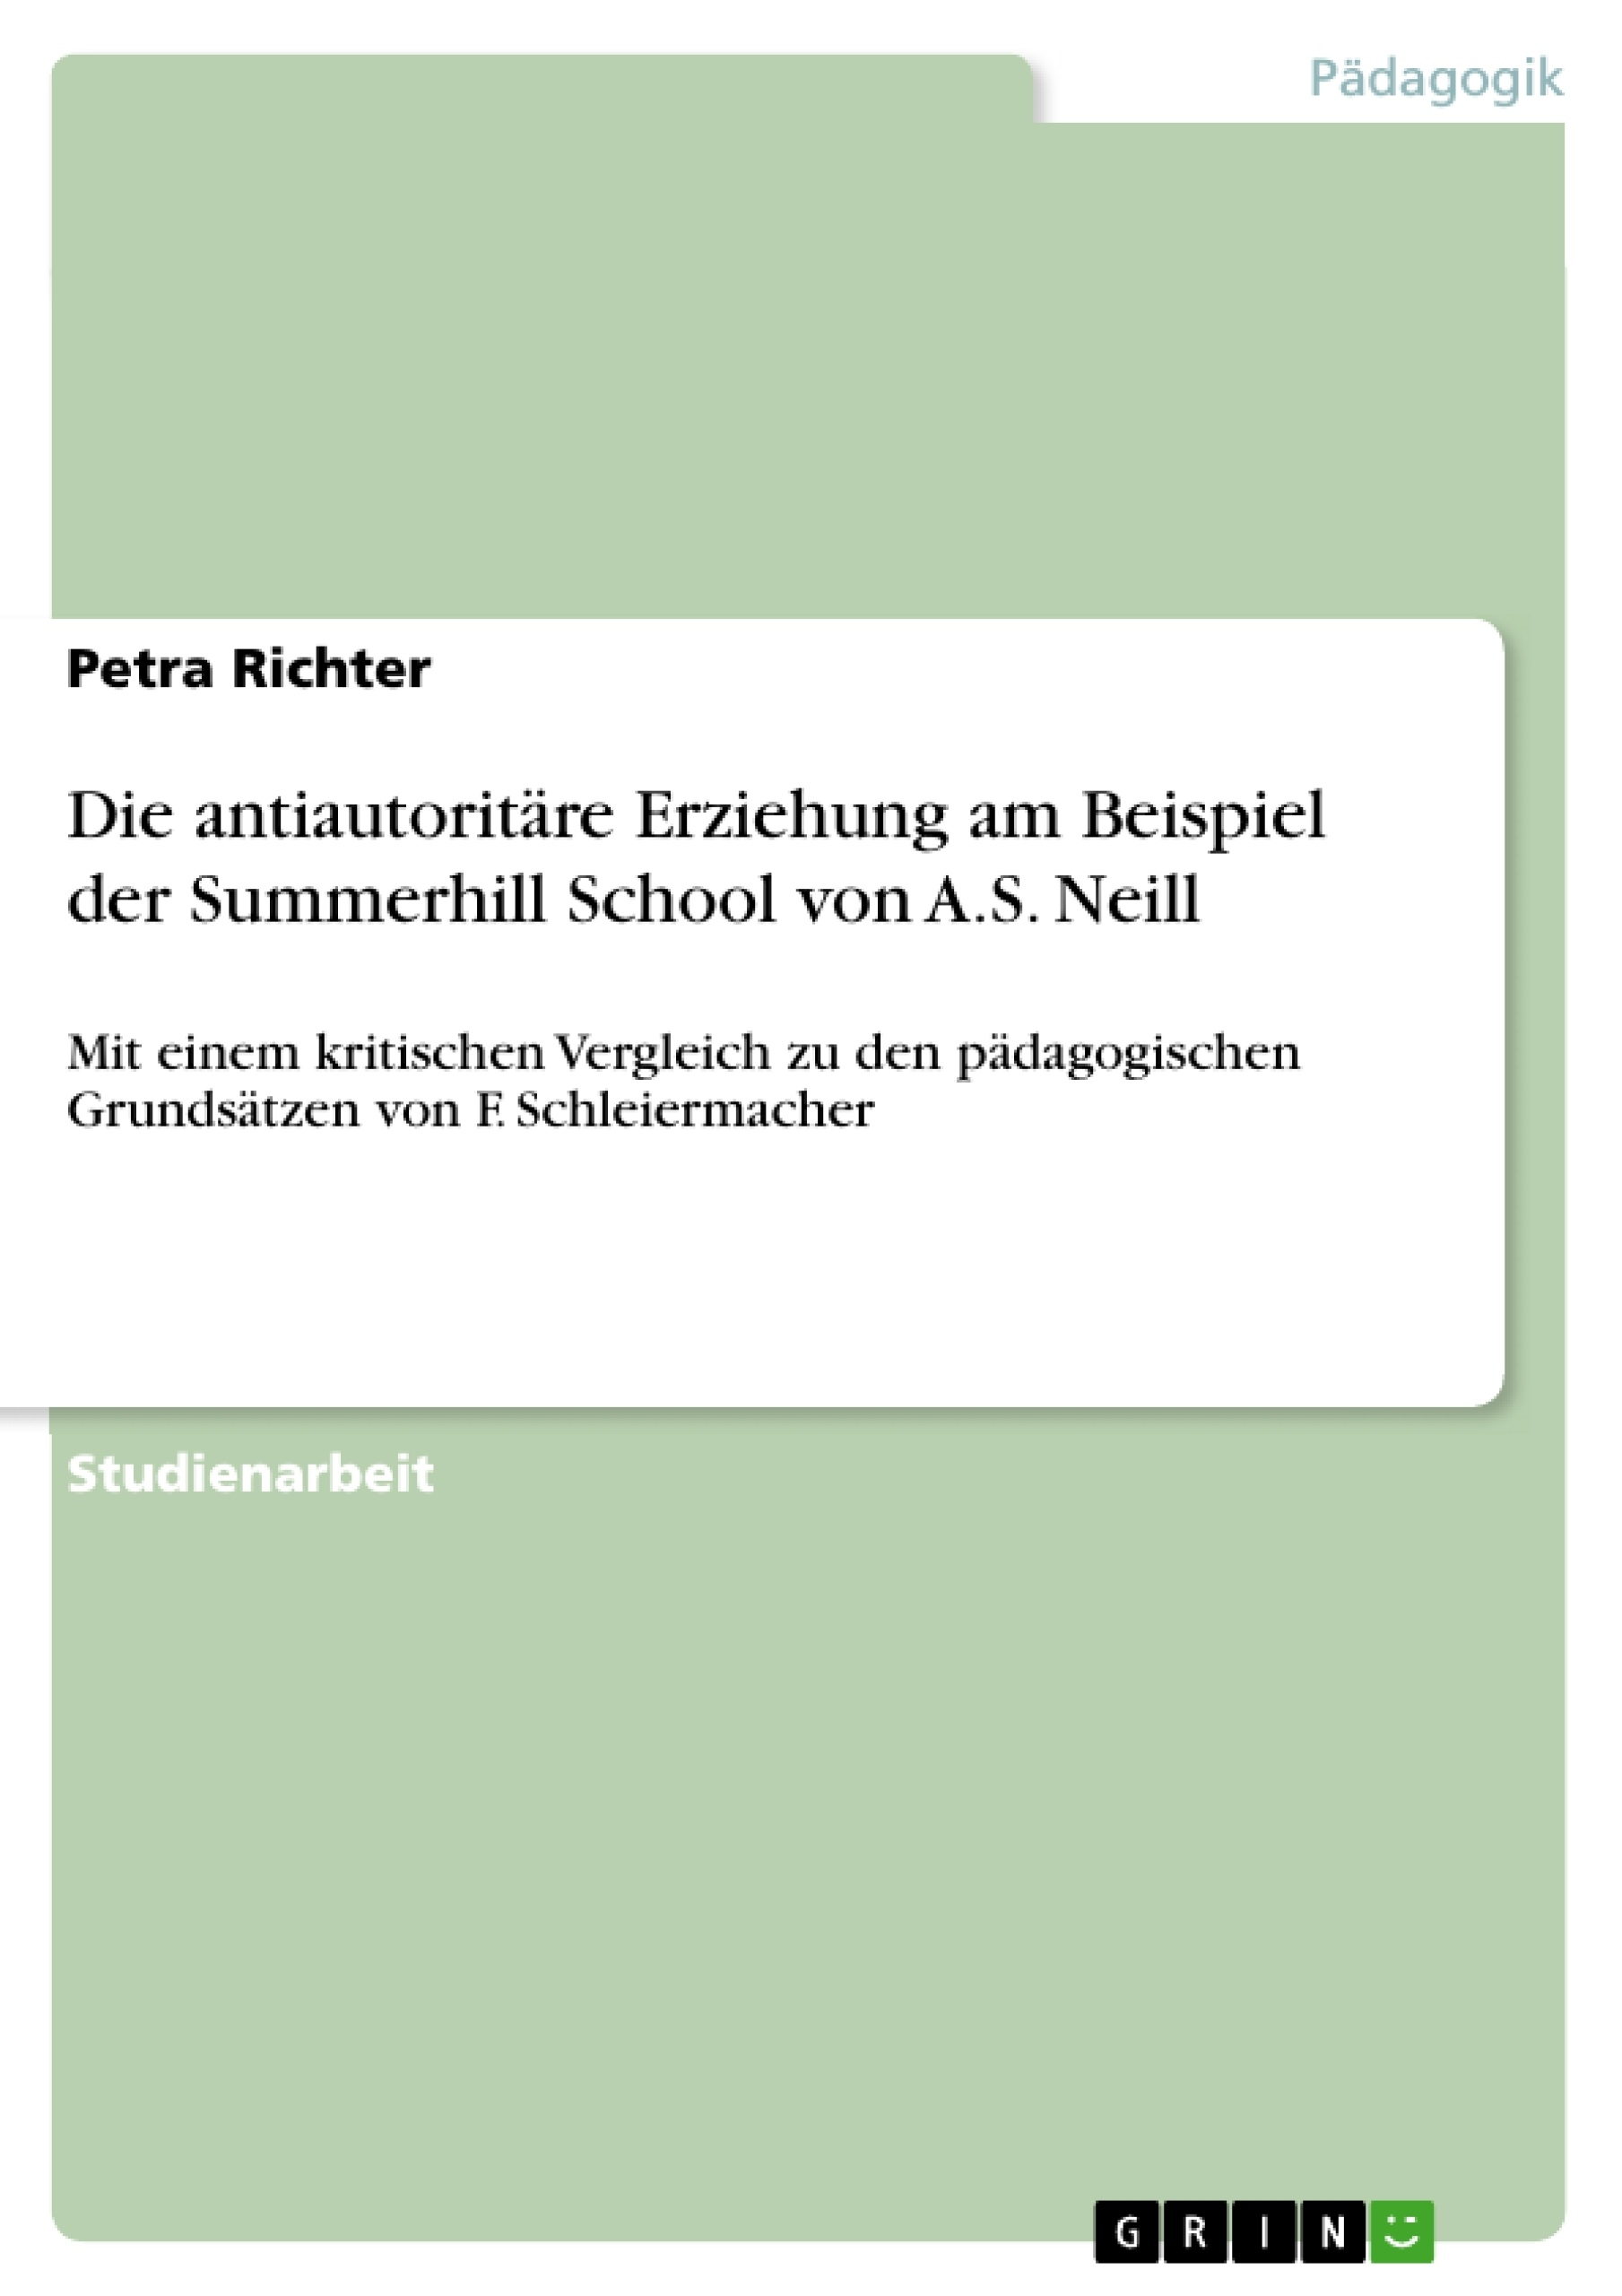 thesis on summerhill schools